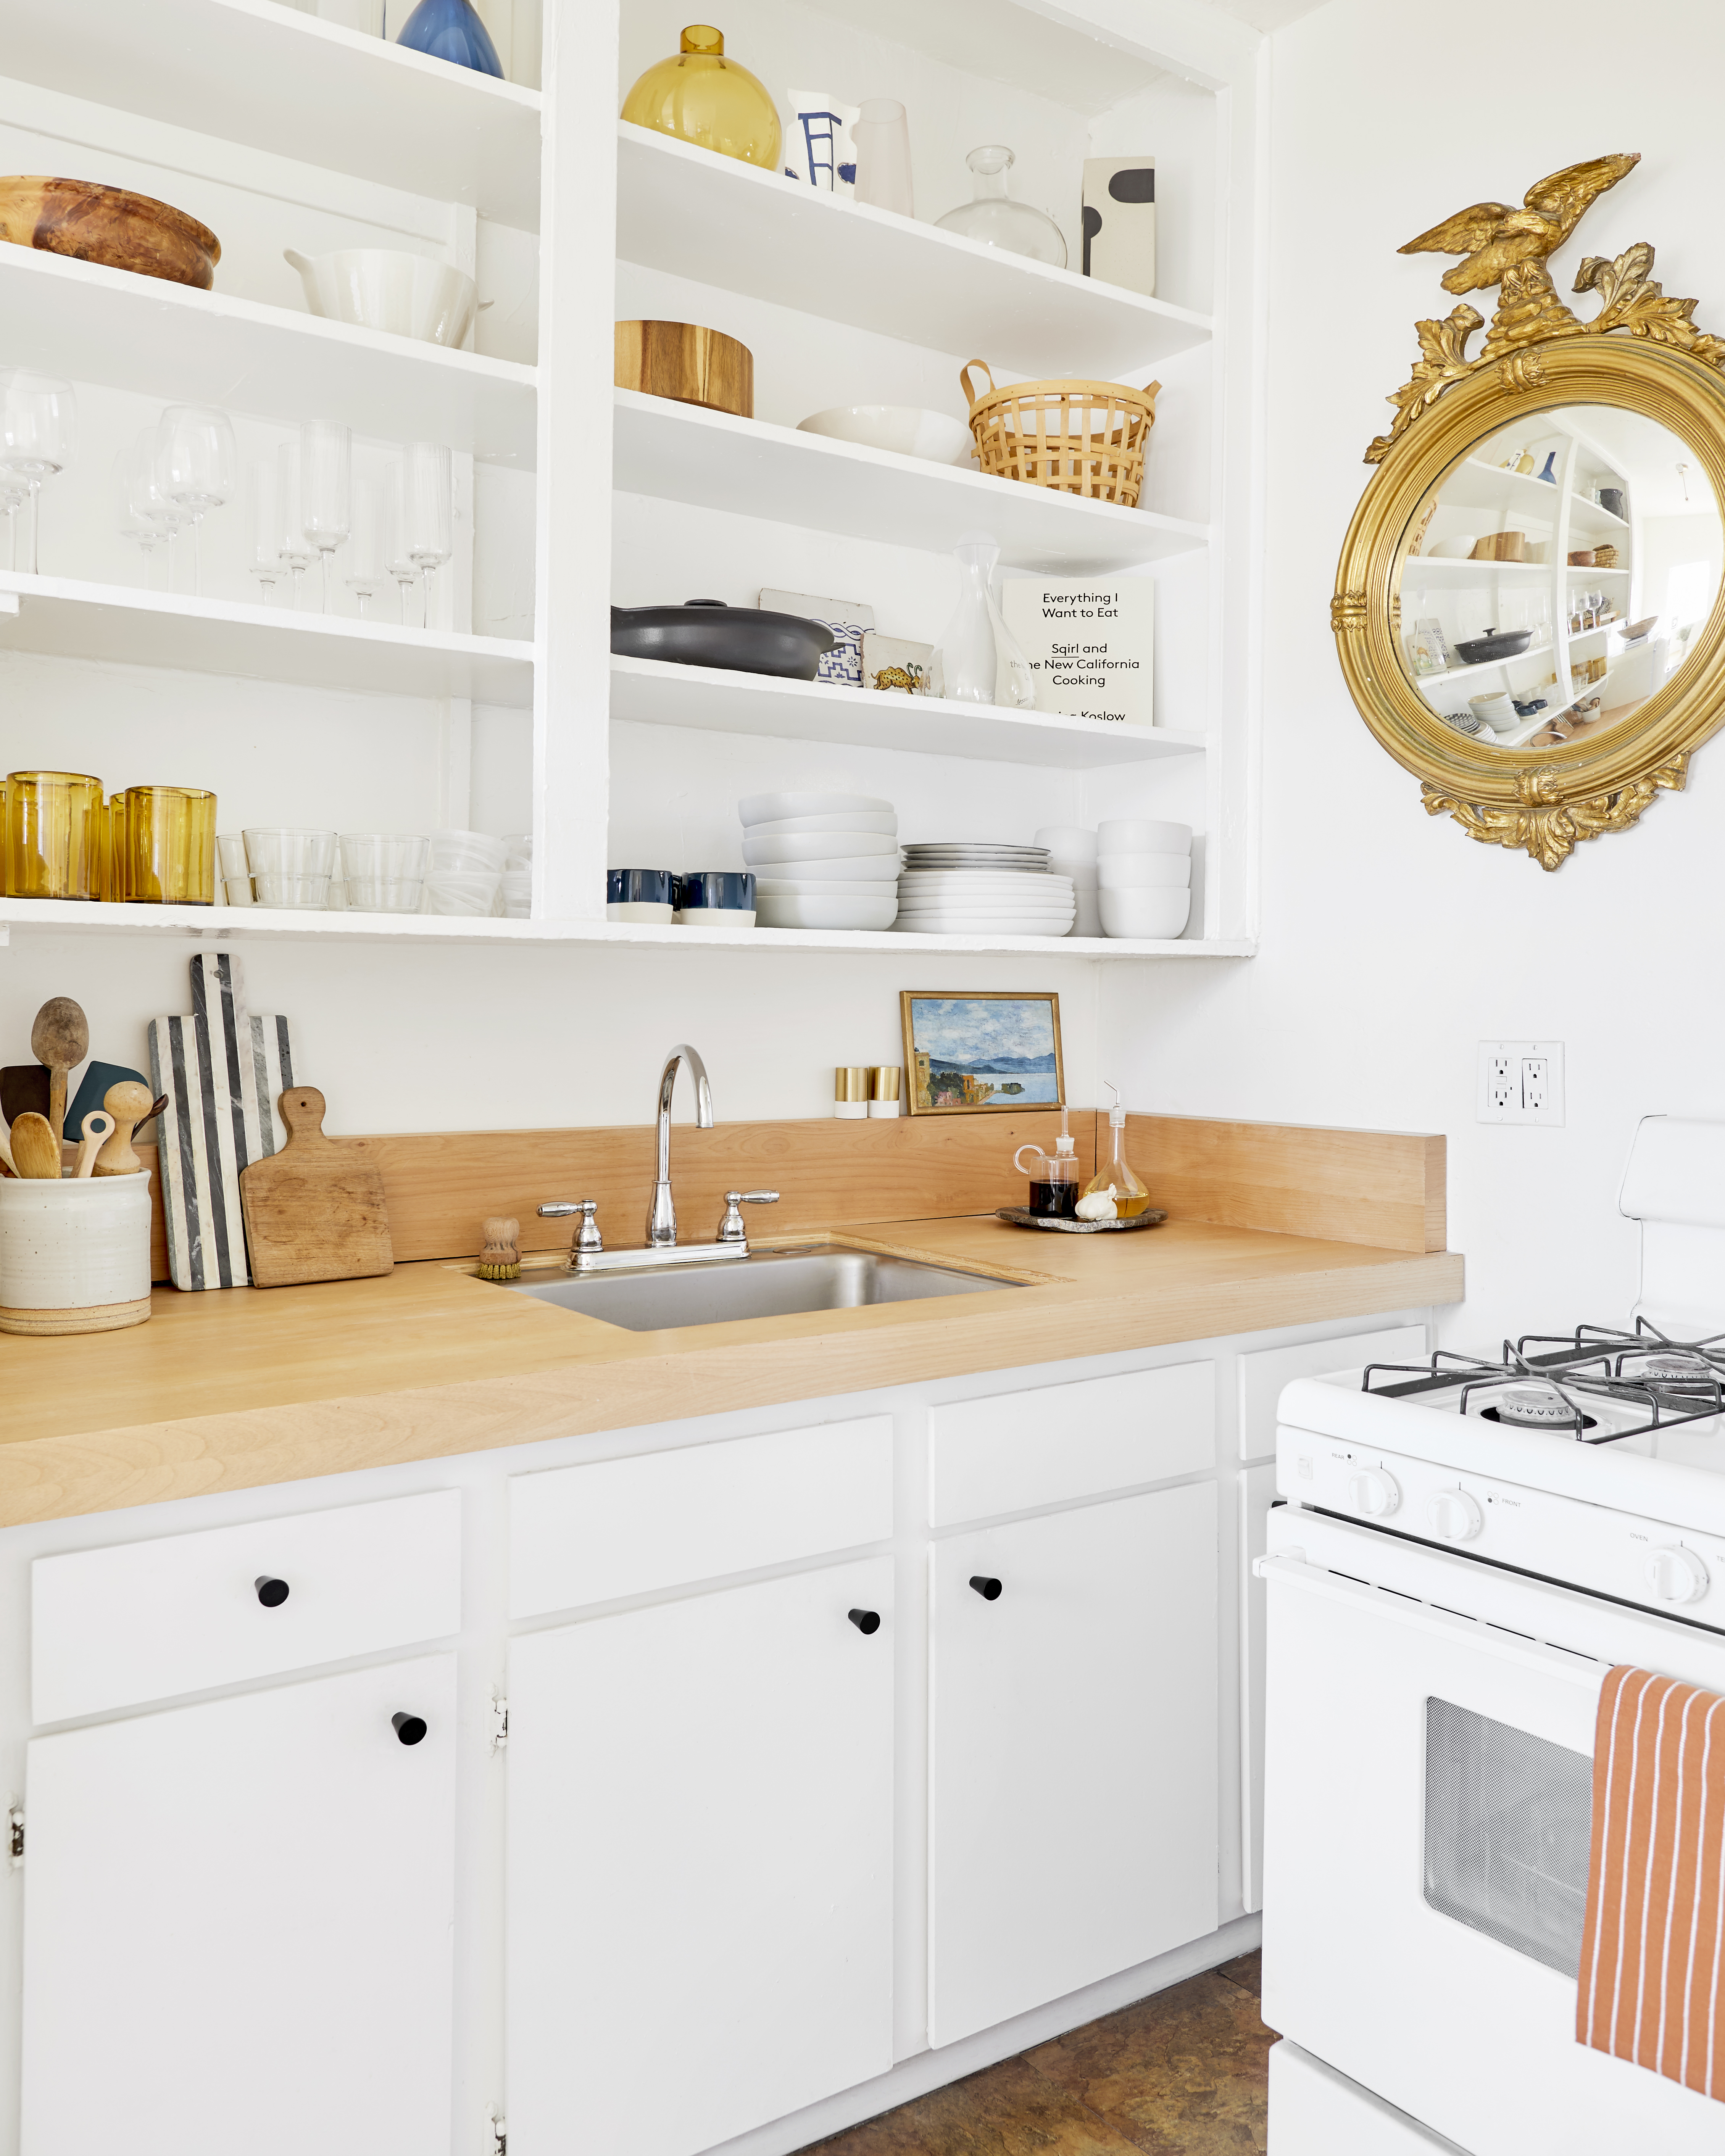 Contemplating Wood Kitchen Countertops? Read This Guide